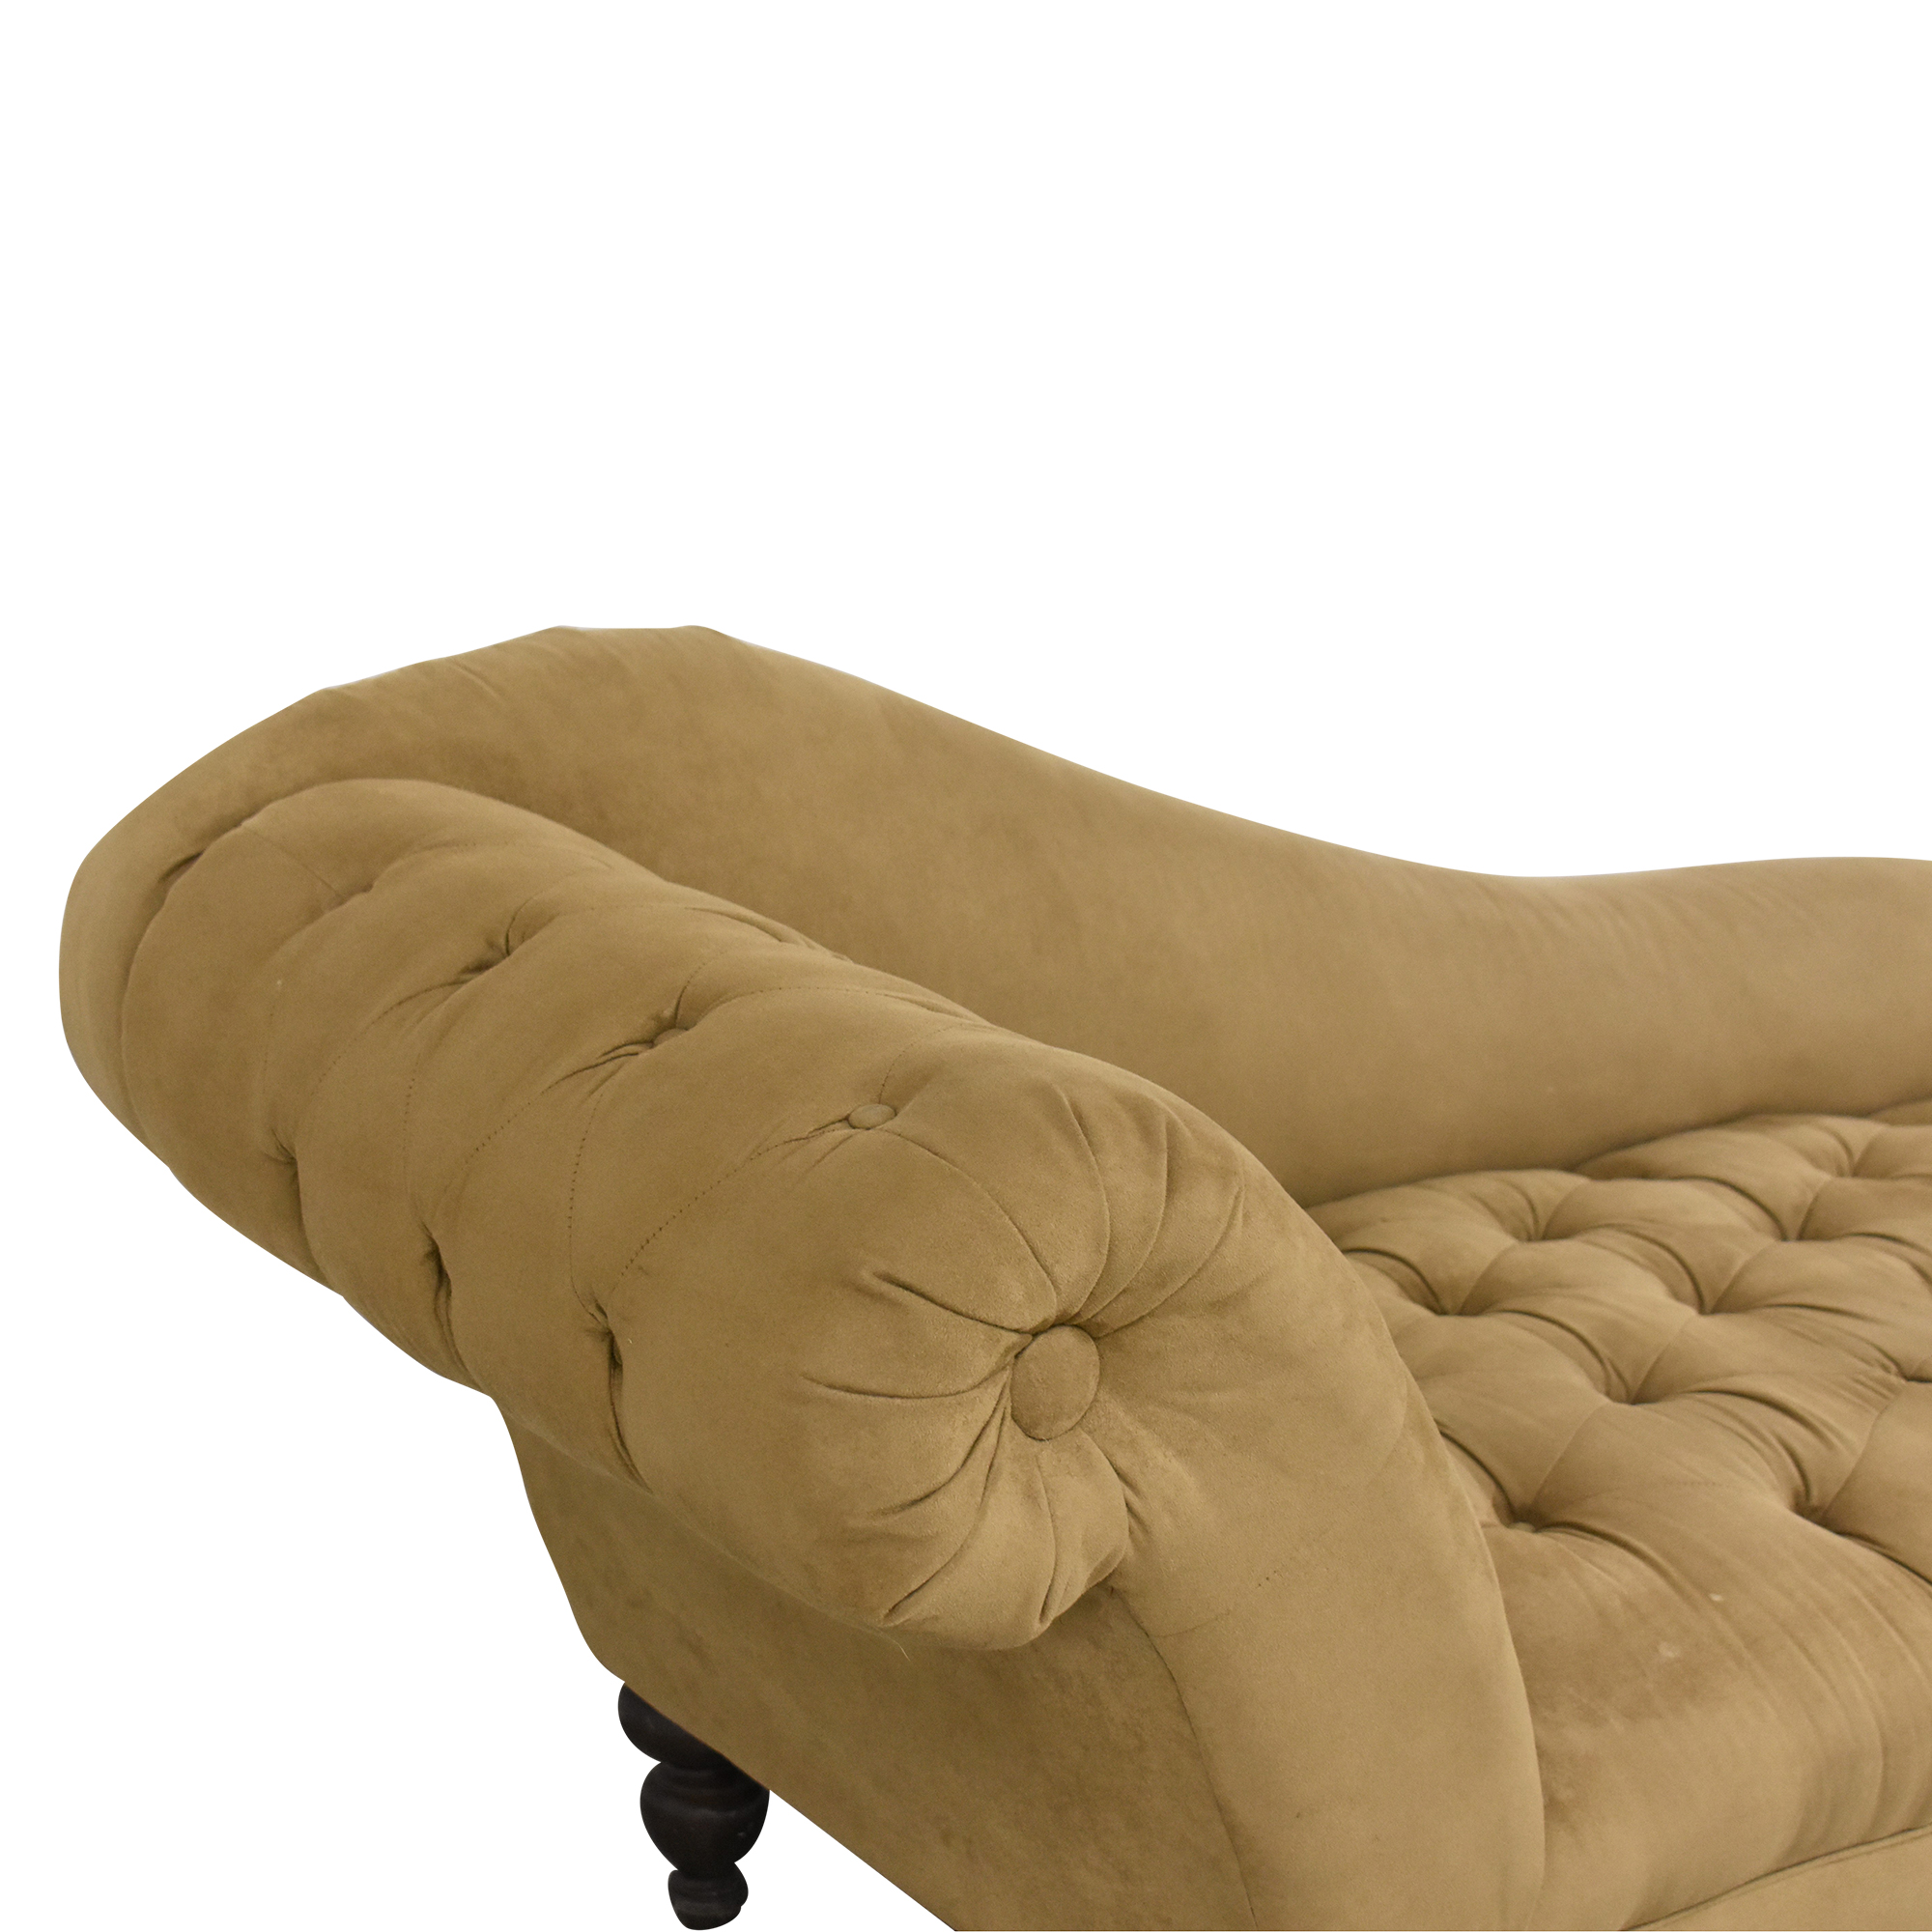 Tufted Chaise Lounge price